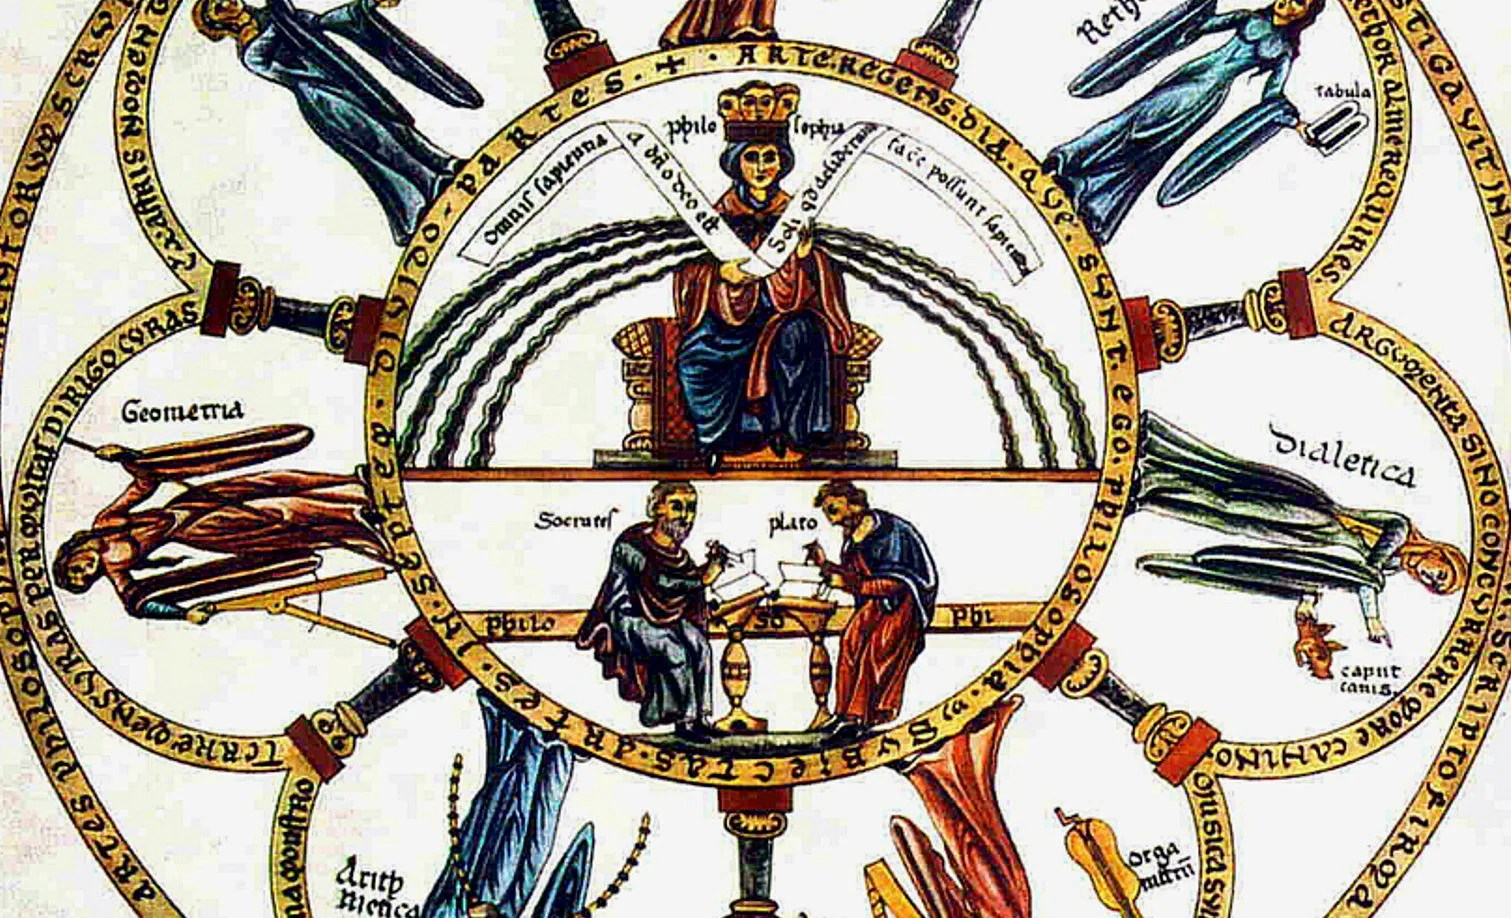 20 Videos about Philosophy in the Middle Ages